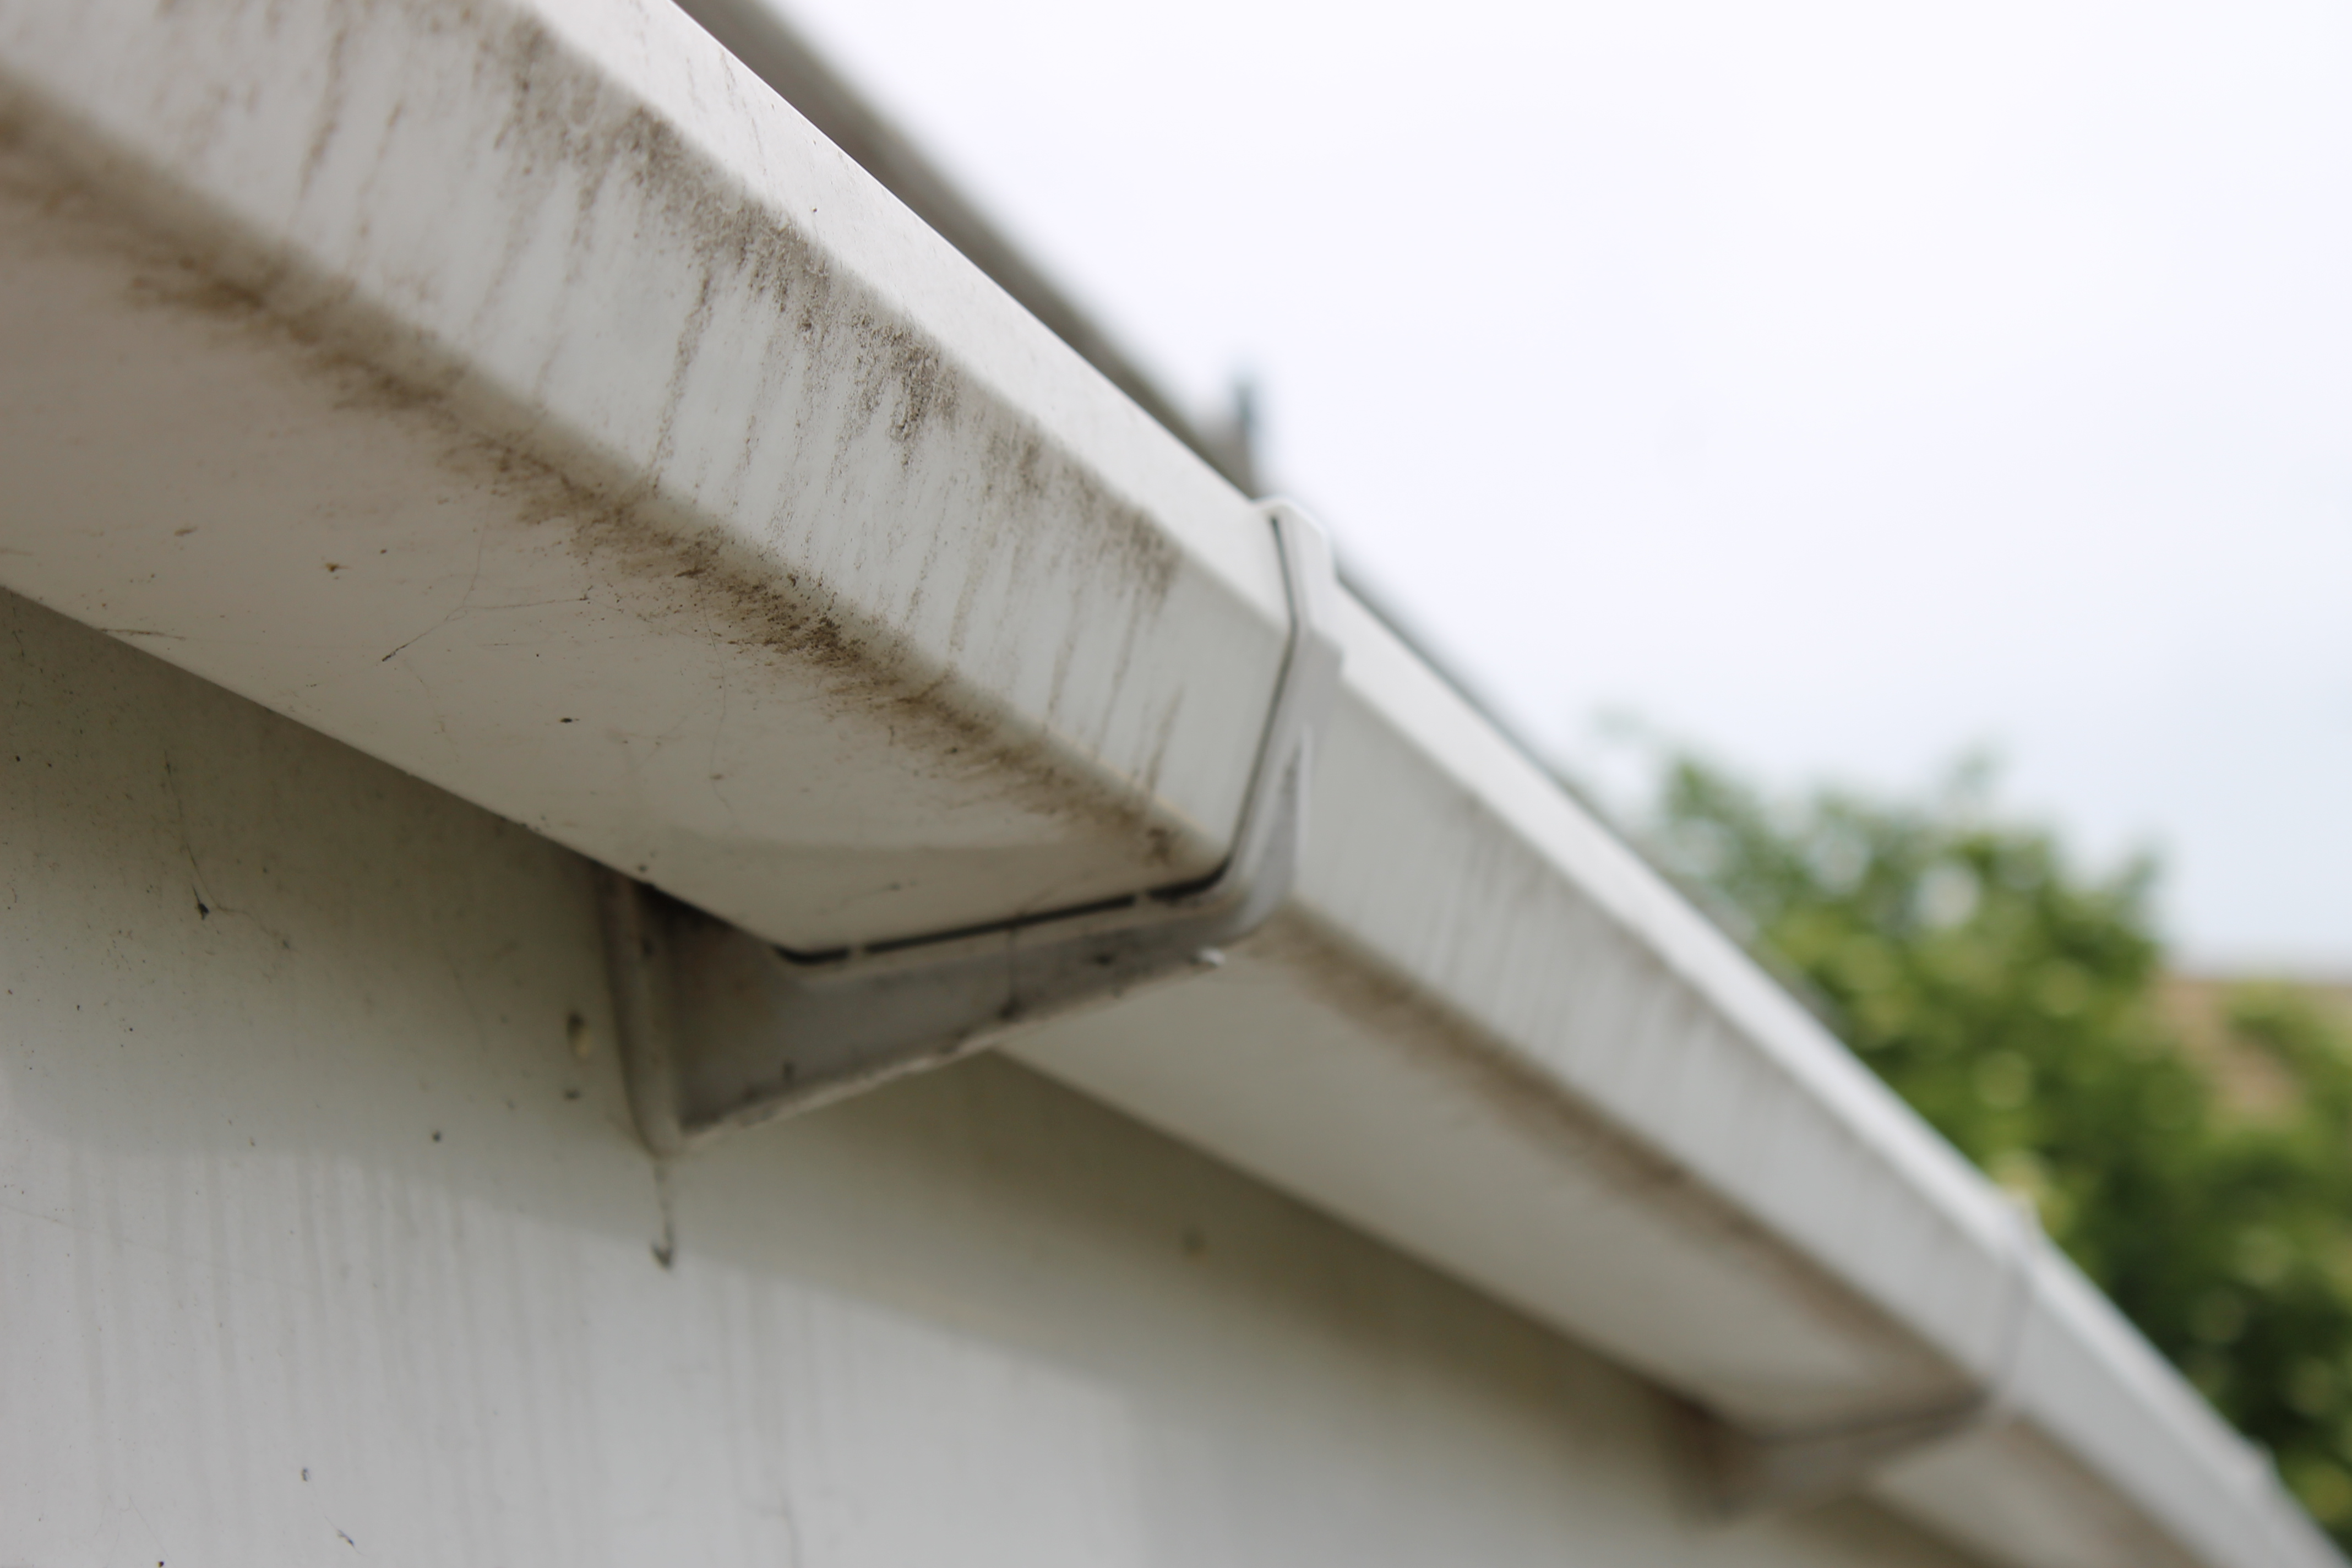 Fascia And Gutter Cleaning Belton Cleaning